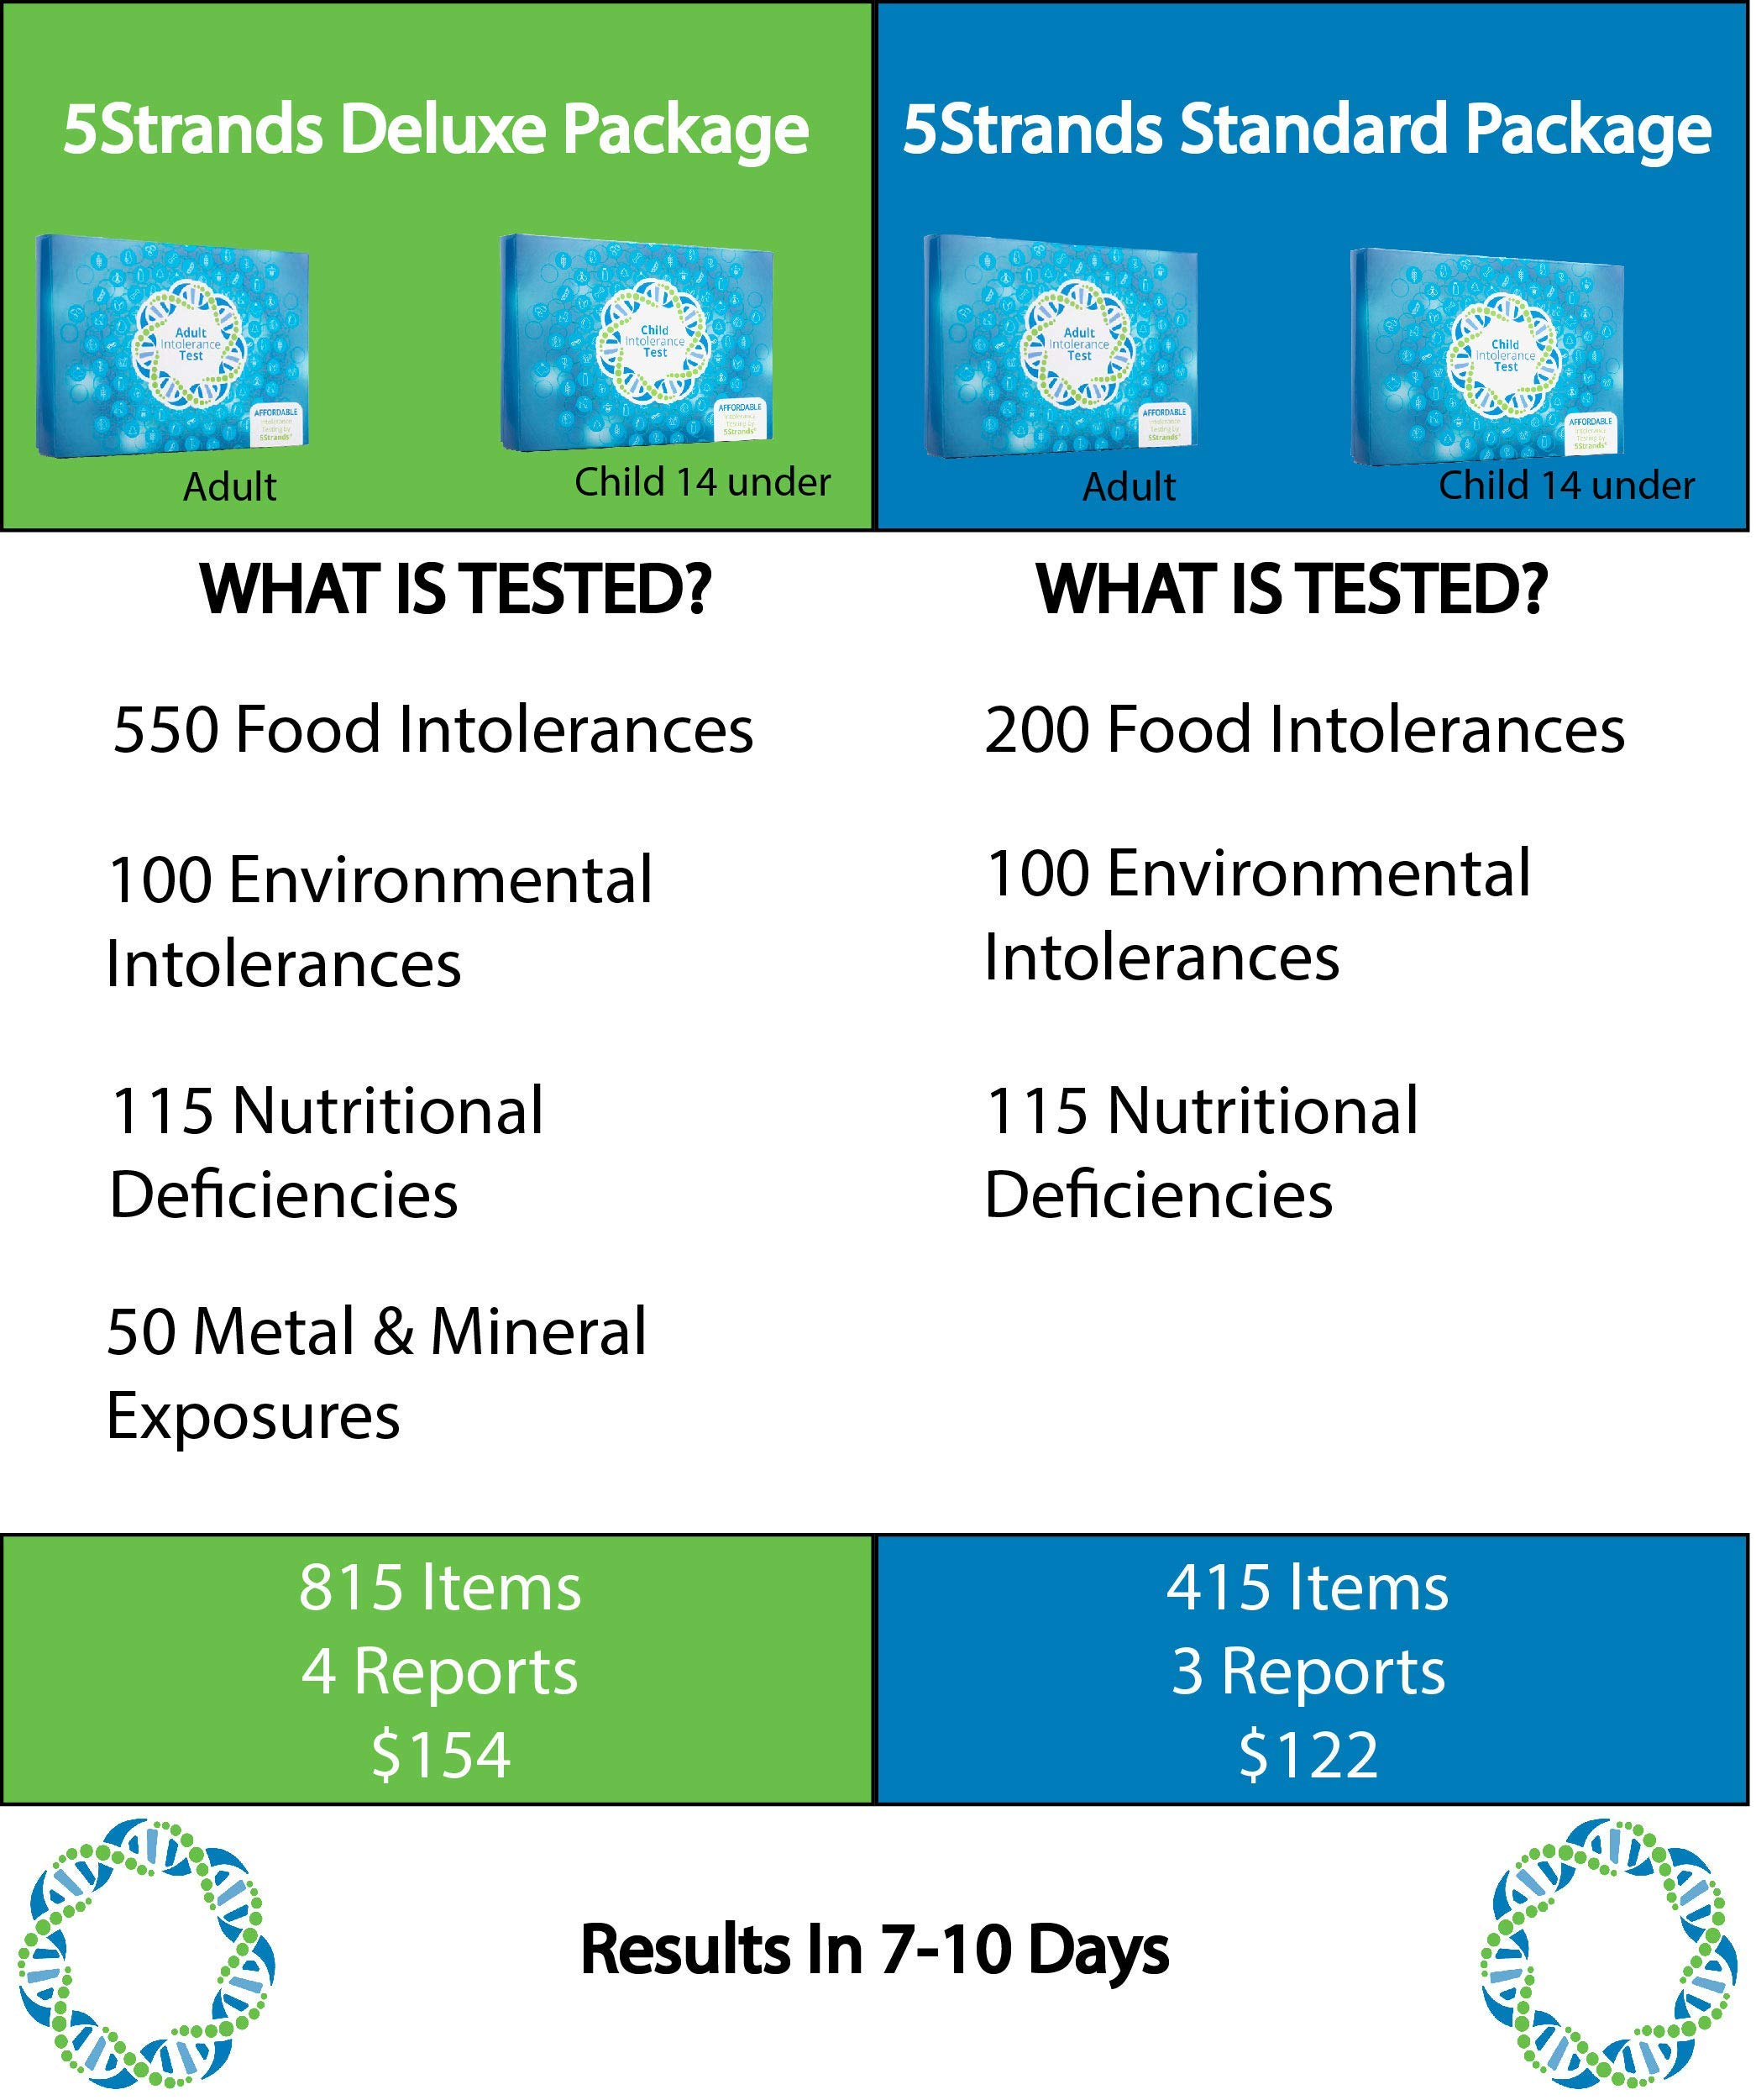 5Strands | Home Test Kit | 200 Food & 100 Environmental Intolerance Items Tested | Bonus 115 Nutritional Deficiencies | 415 Total Items | Hair Analysis | Results 1-2 Weeks | Adult Standard by 5Strands (Image #1)